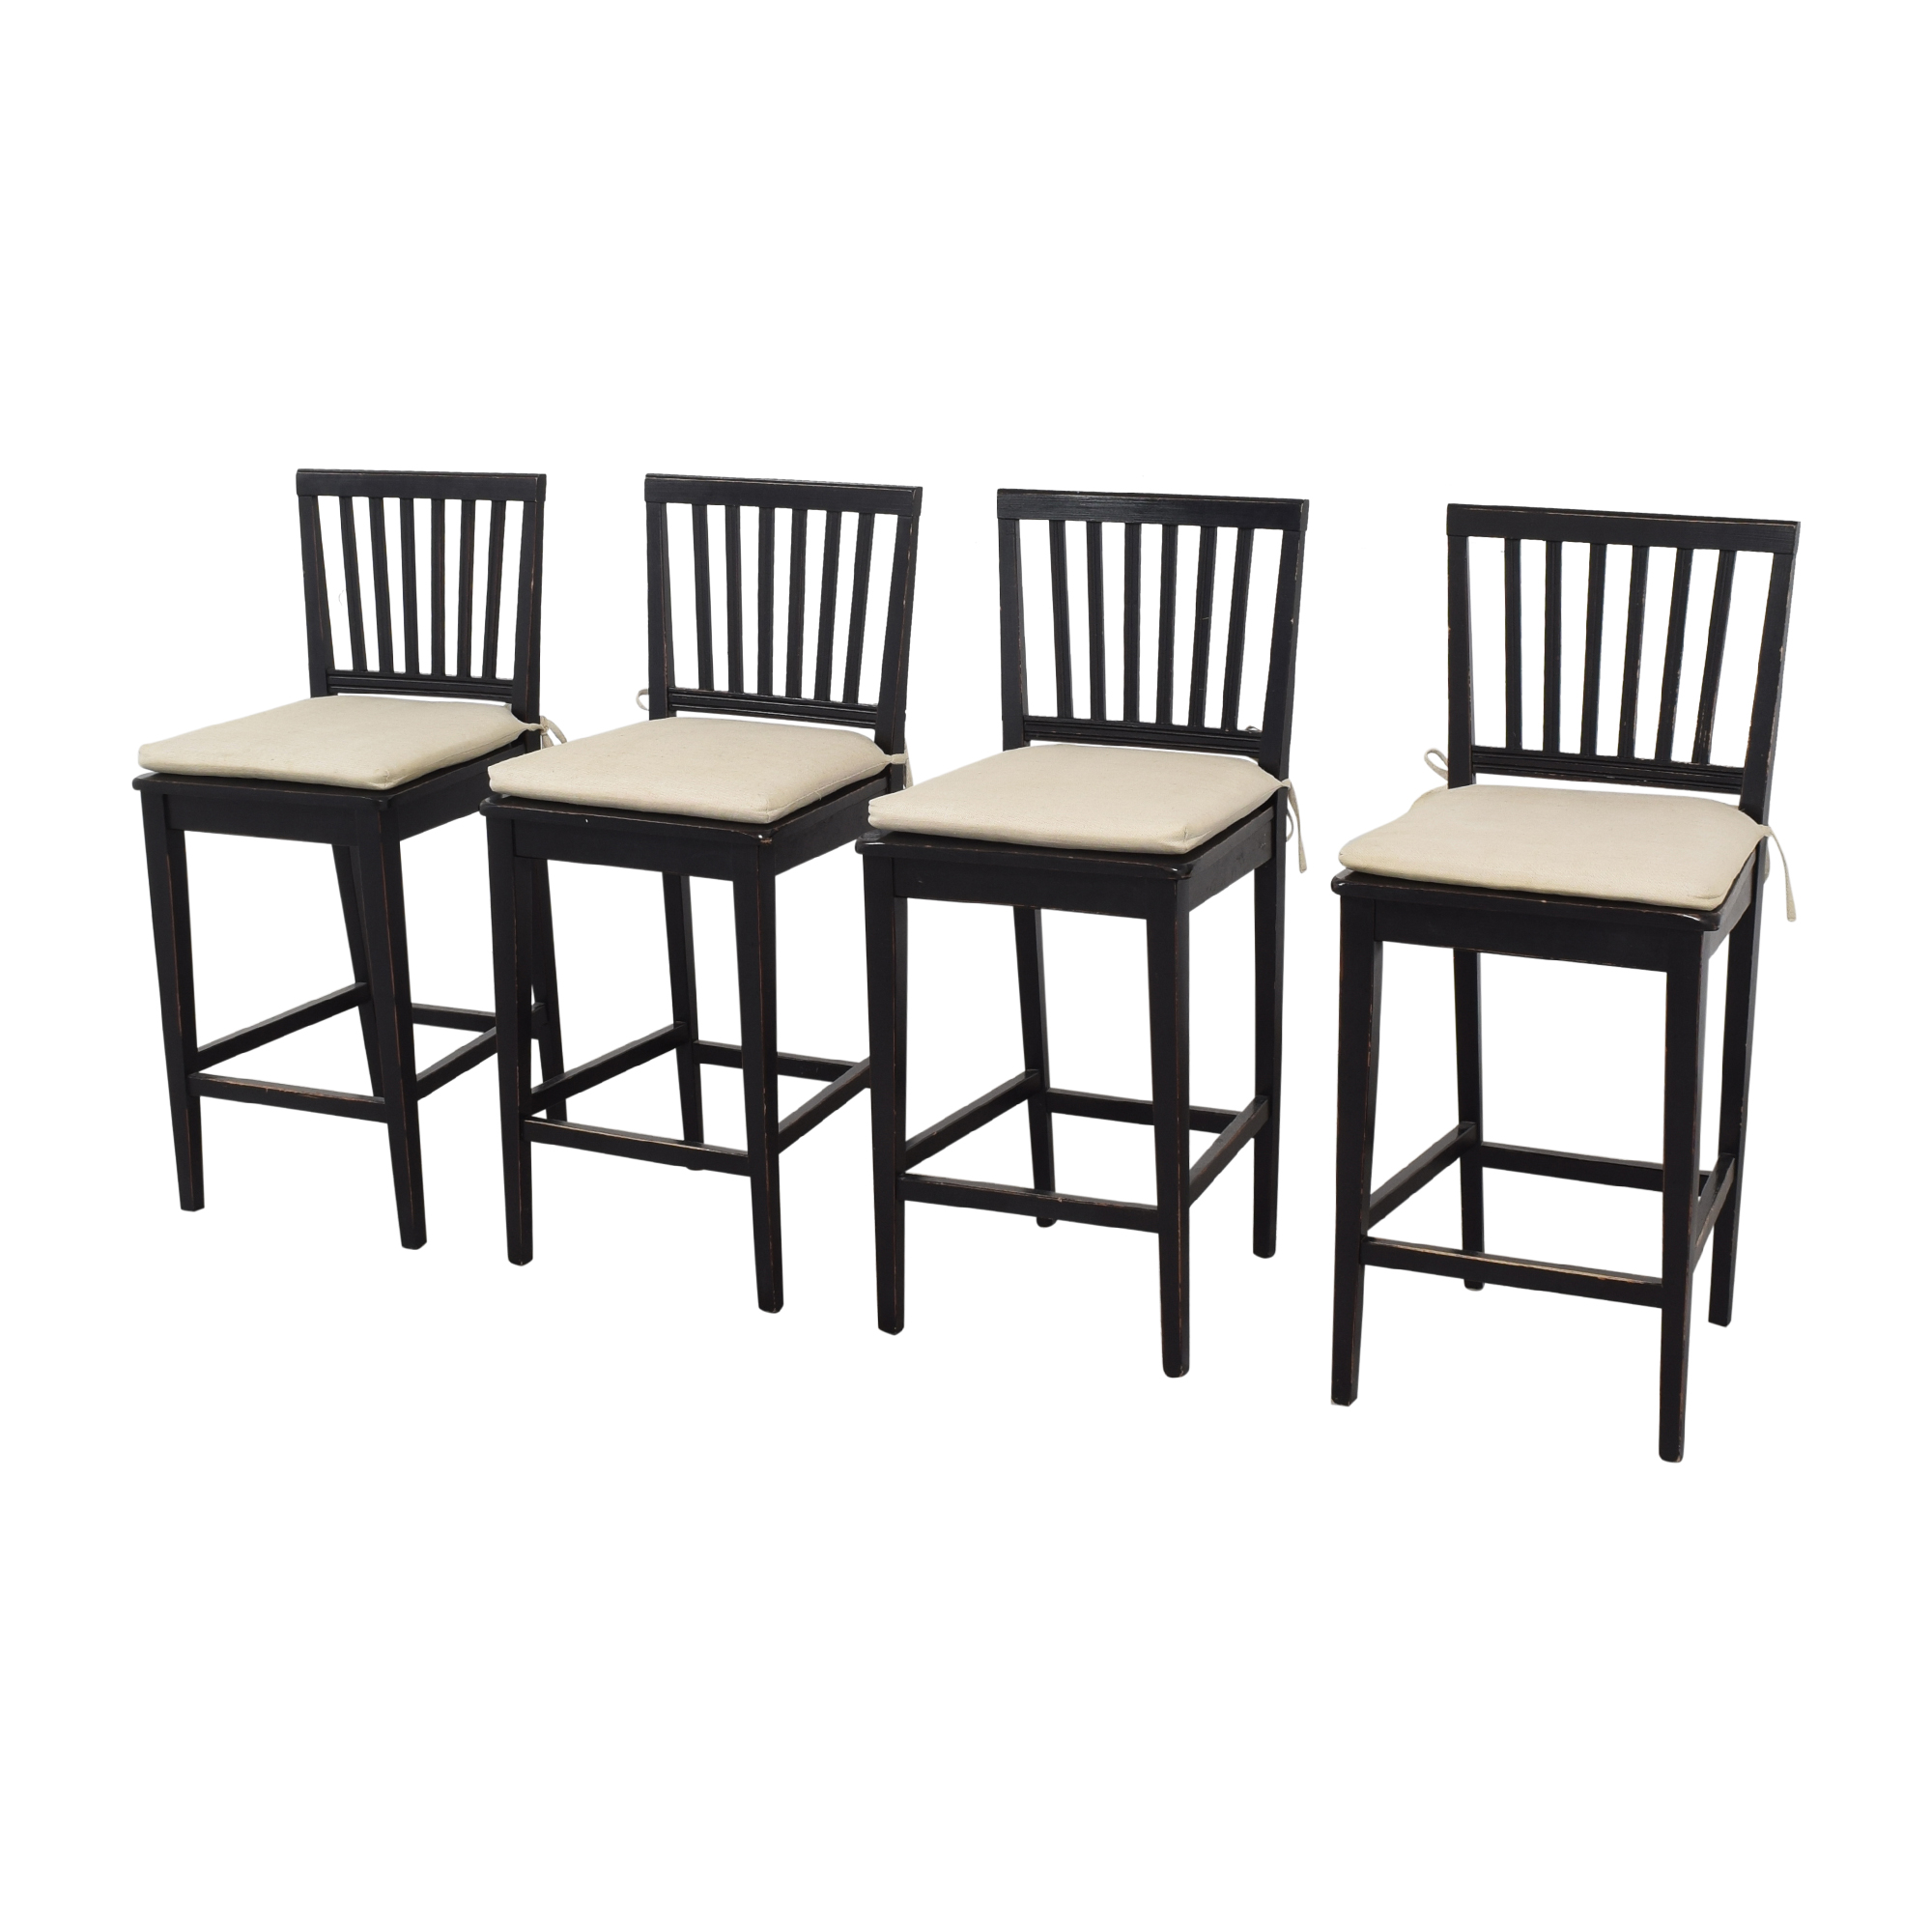 Crate & Barrel Crate & Barrel Buying & Design Counter Height Chairs discount